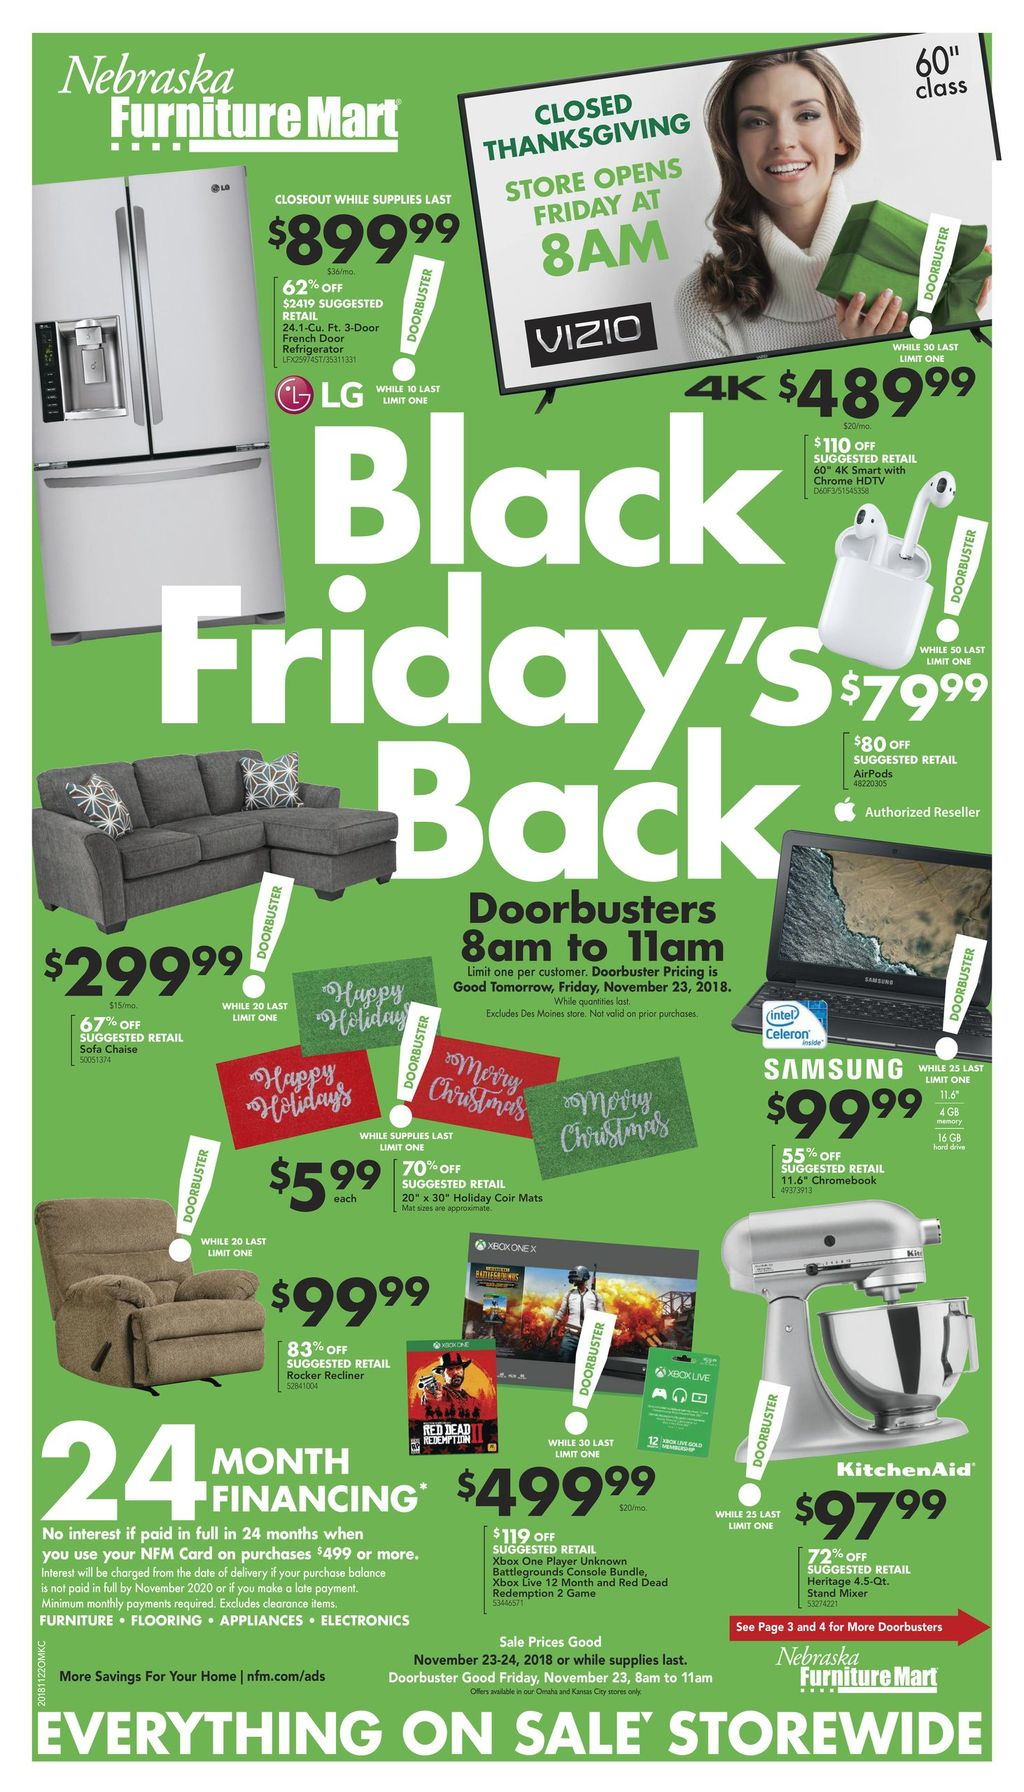 Nebraska Furniture Mart Black Friday Ad 2018